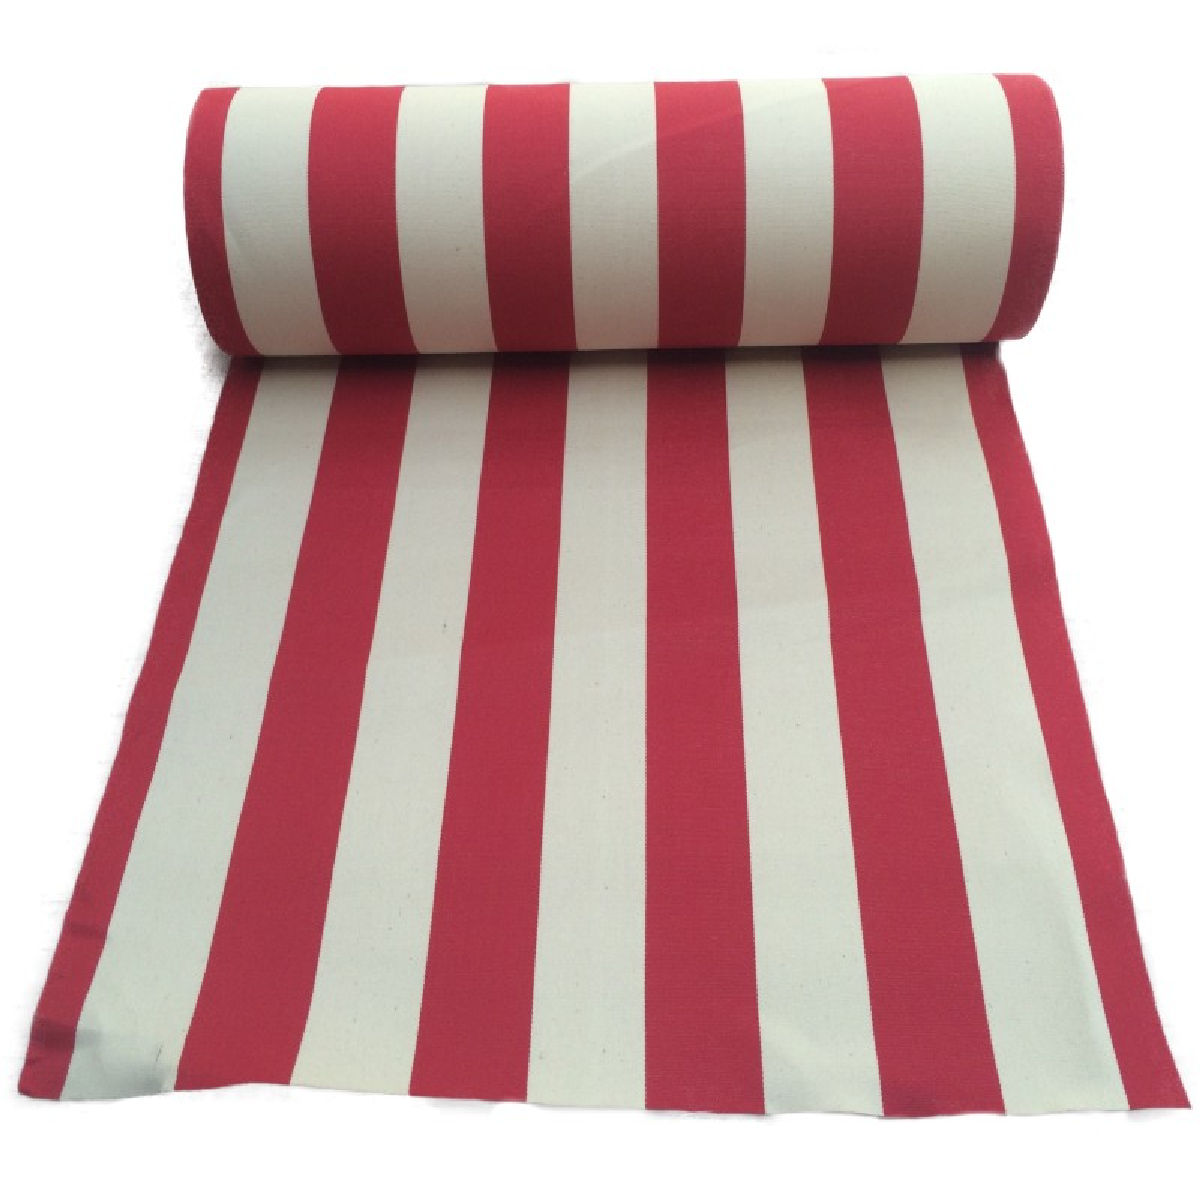 Bournemouth STRIPE DECKCHAIR Cotton Canvas Deck Chair FABRIC Material 44cm wide  sc 1 st  BST Fabrics & Upholstery Tacks | Nailhead Trim | Buy Upholstery Supplies